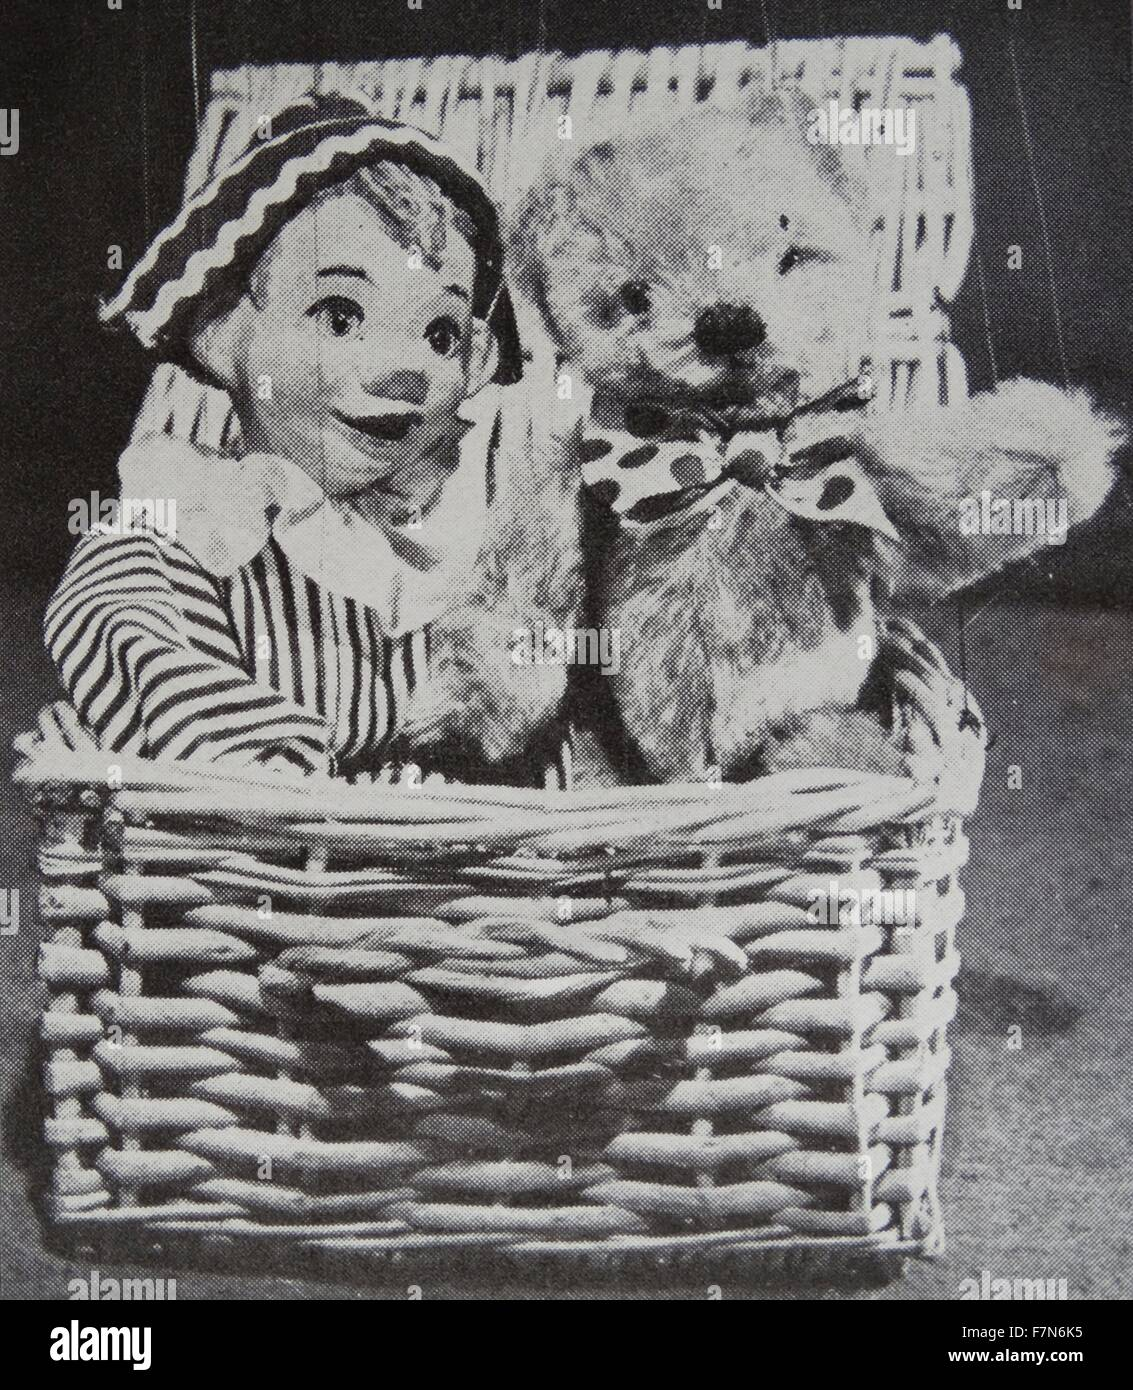 A hamper used as a 'prop' in an episode of Andy Pandy - Stock Image